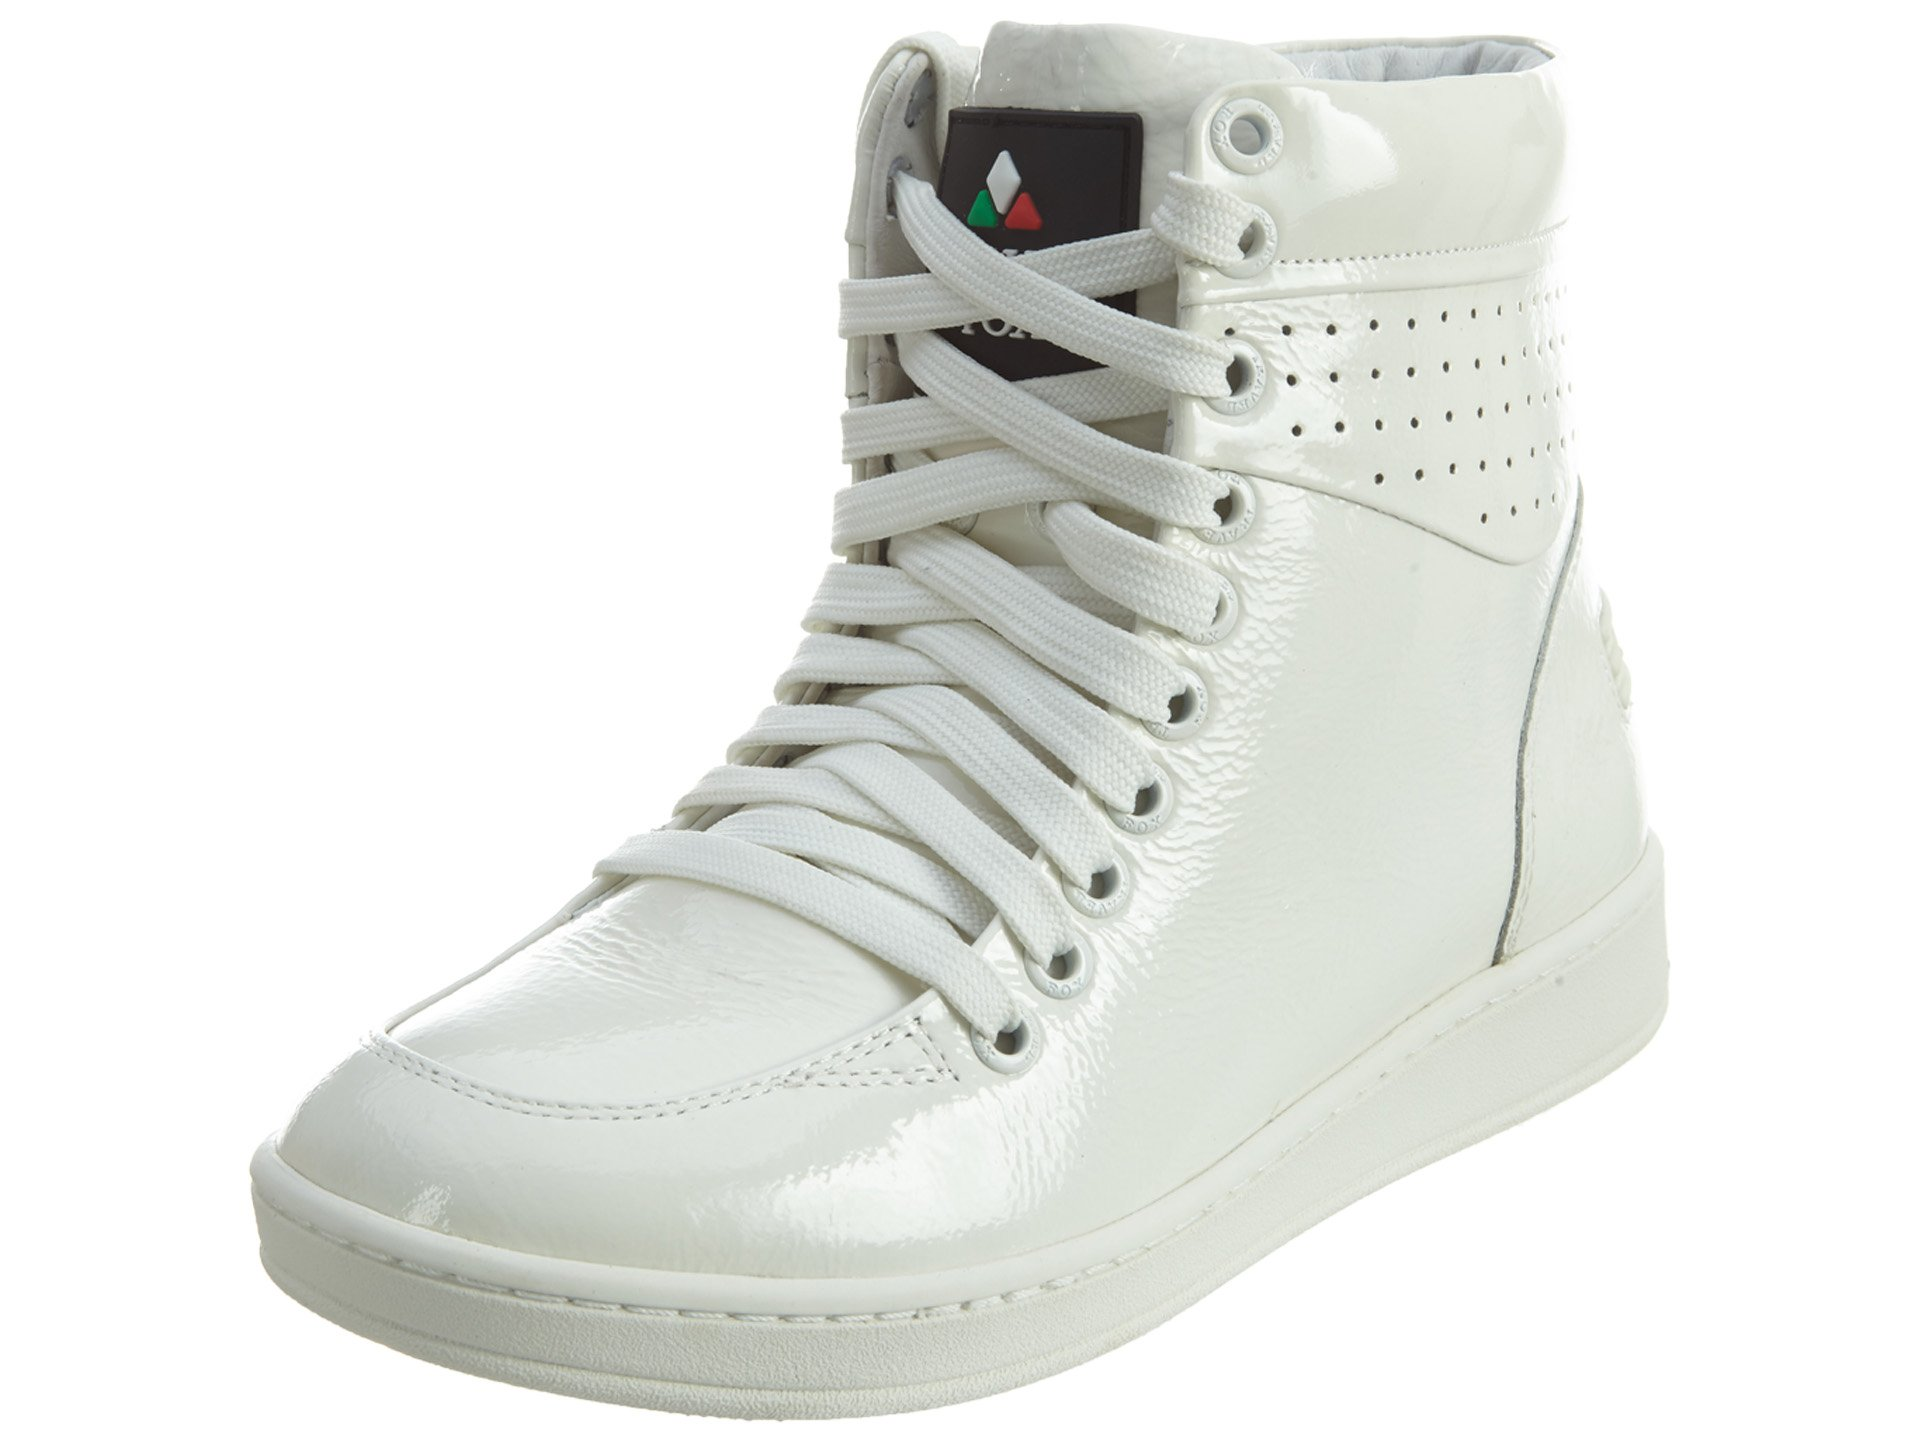 Travel Fox 900 Series Nappa Leather High Top Womens Style: 916301-407 Size: 37 by TRAVEL FOX